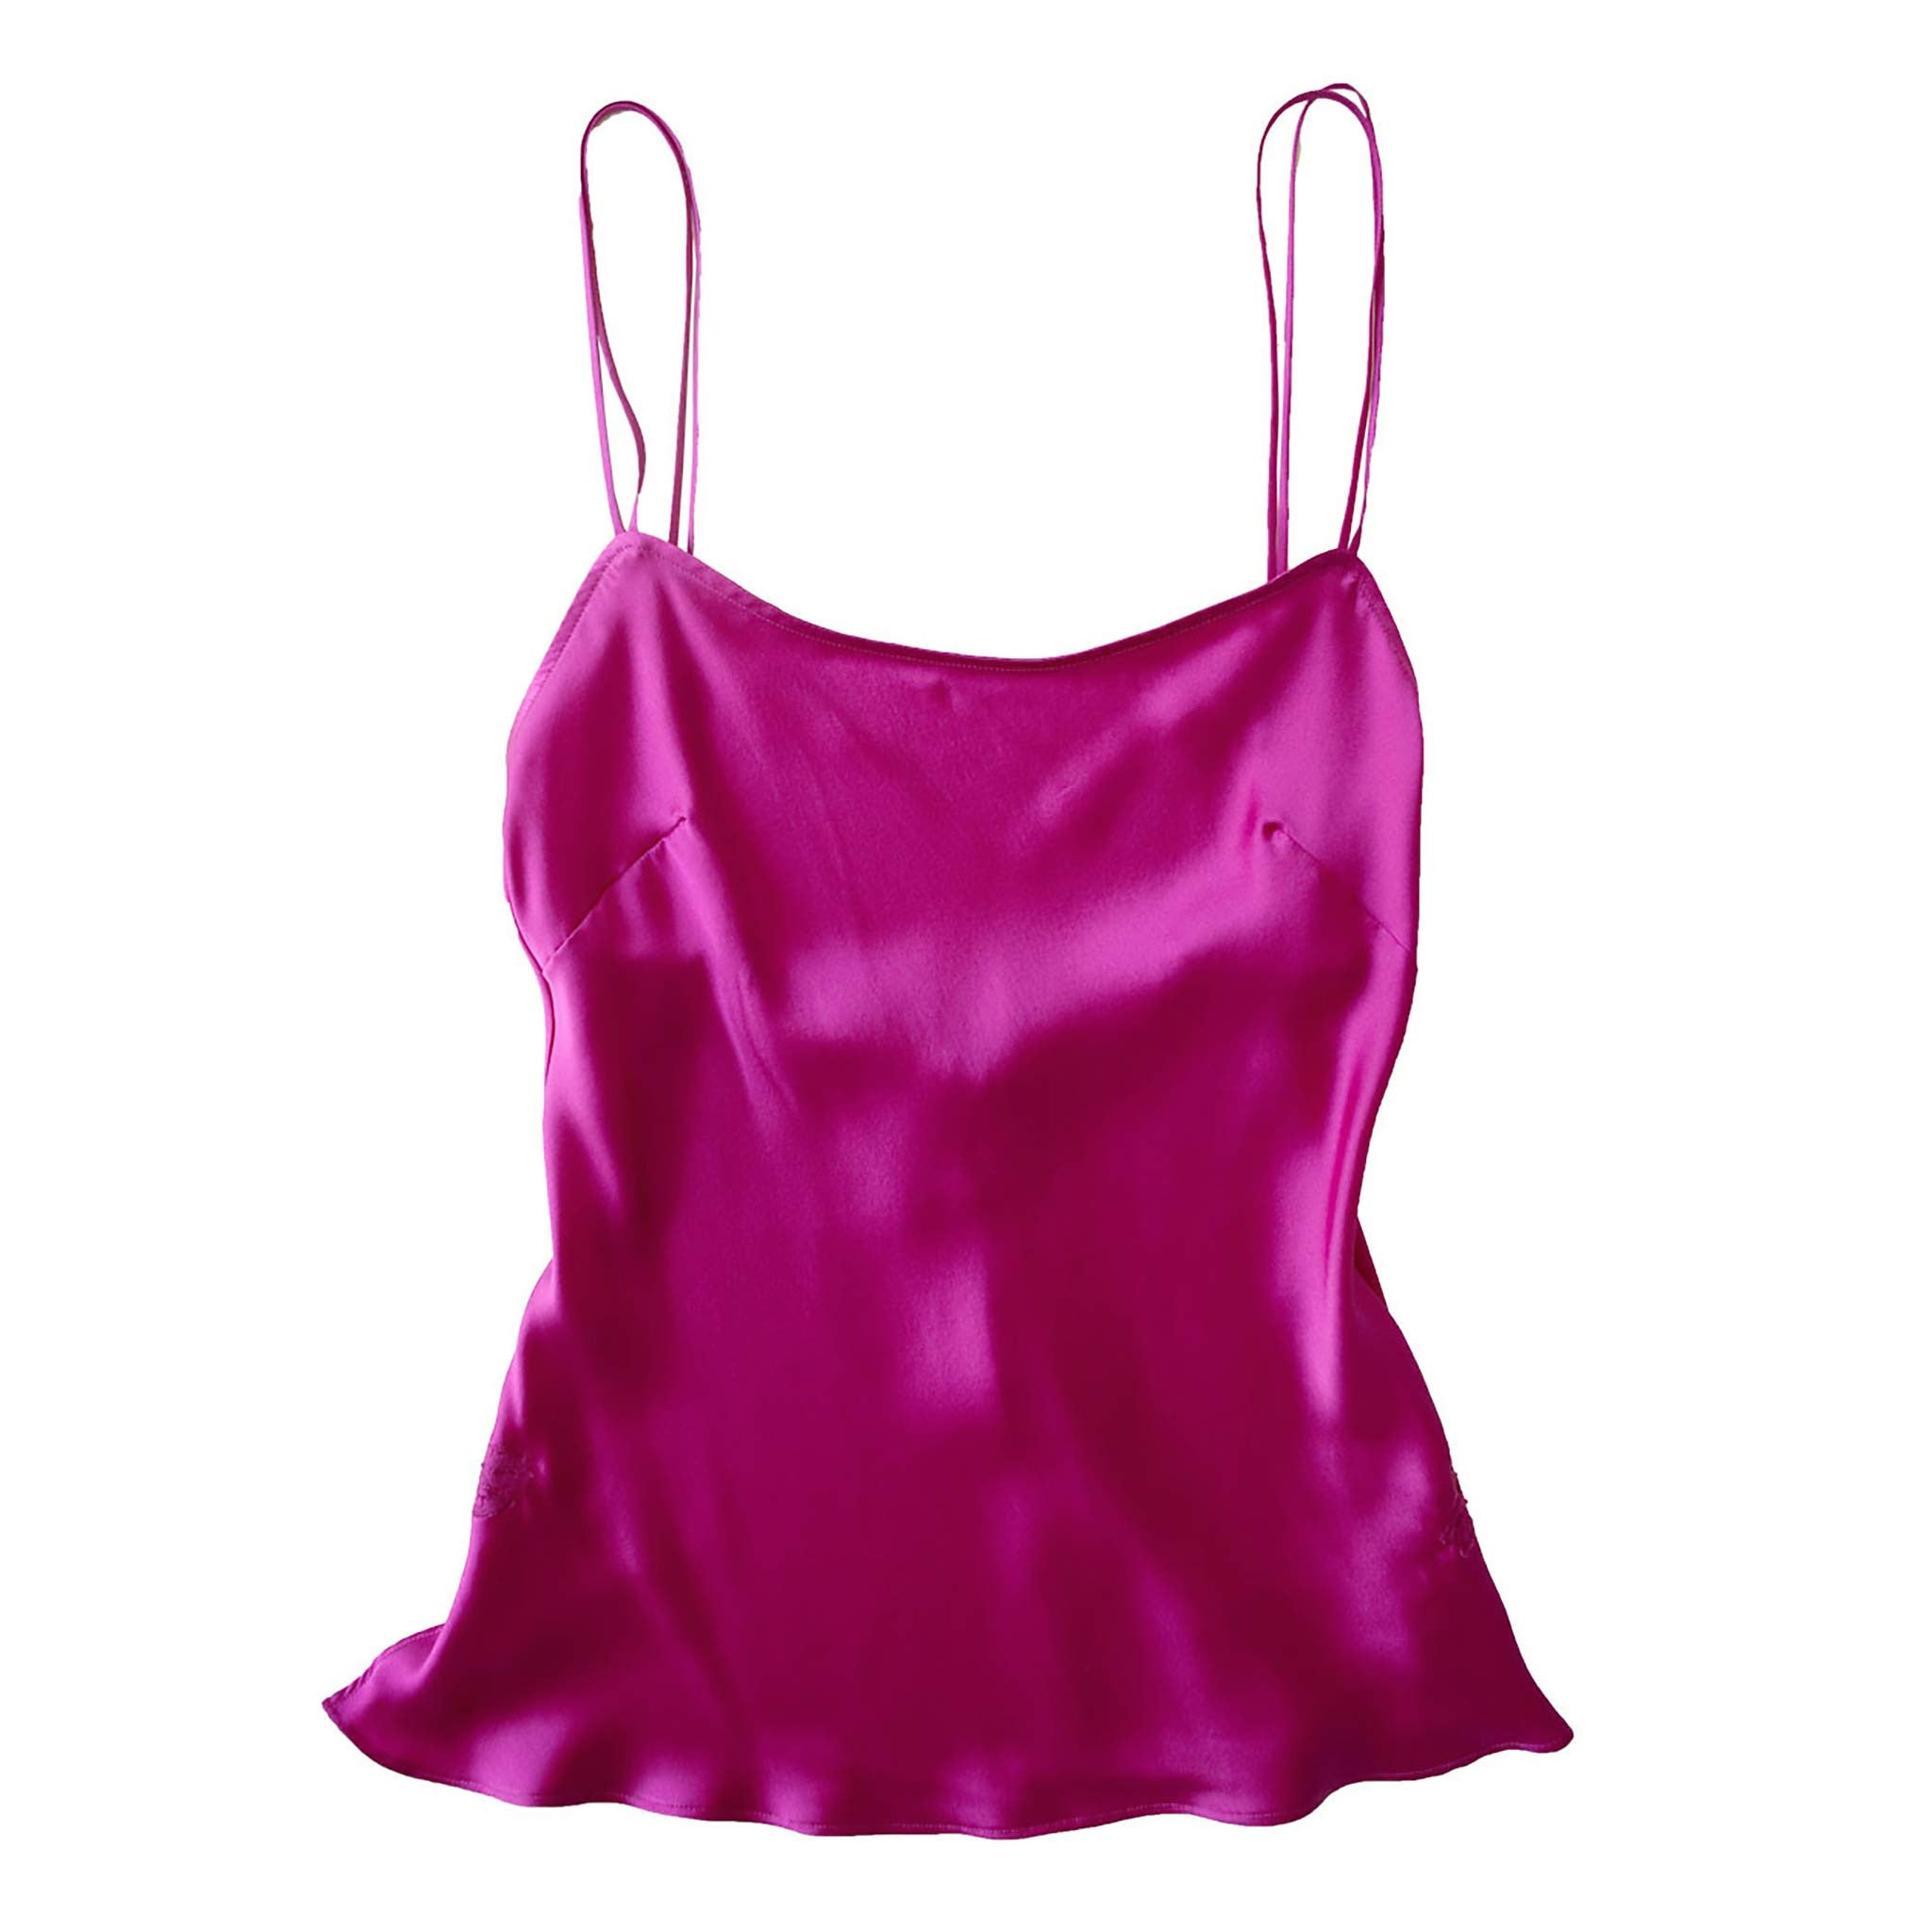 Olwen Camisole in Rubellite Silk Charmeuse